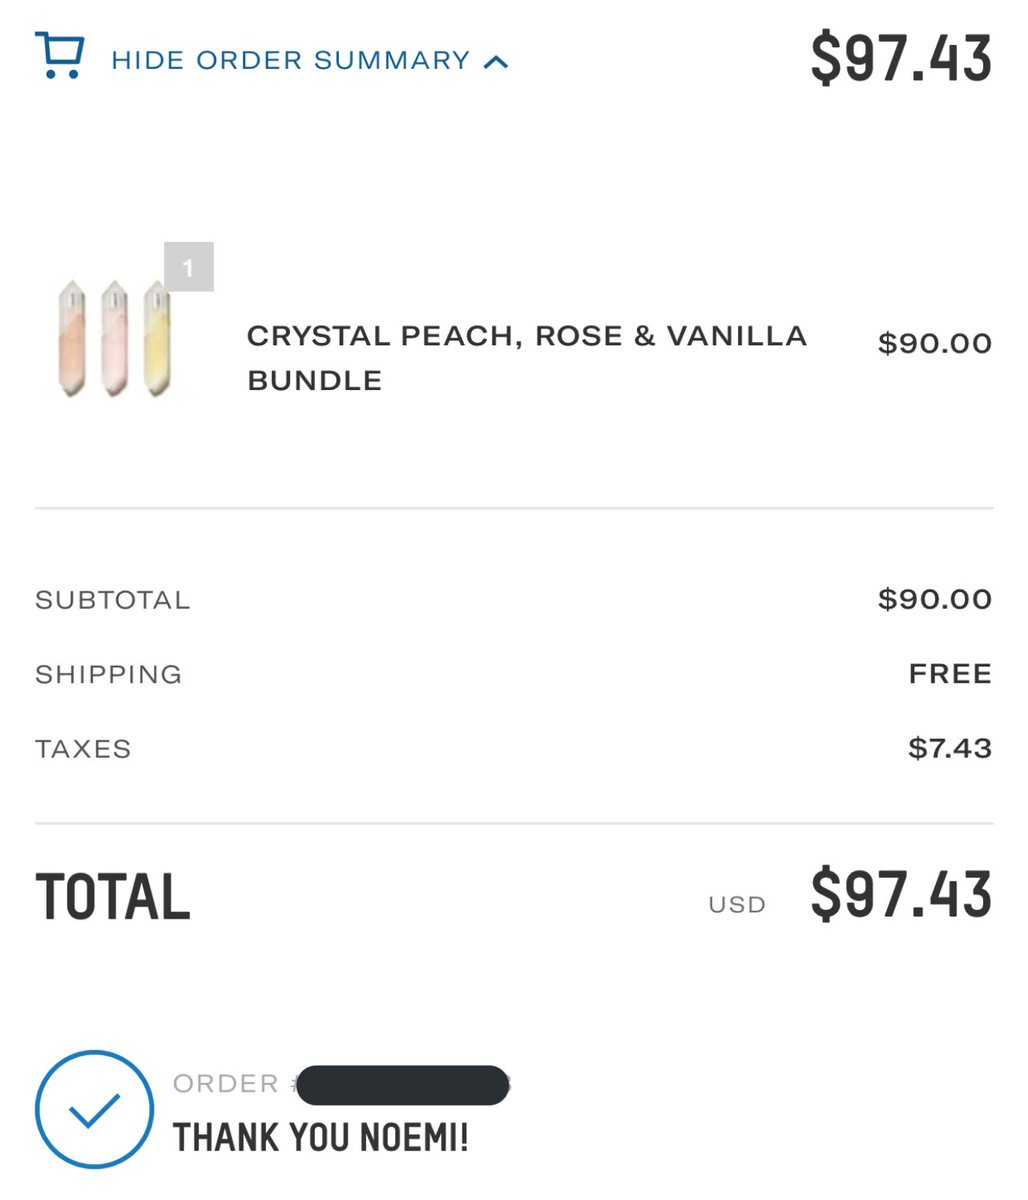 PURRRRR! my crystal collection is complete! @KKWFRAGRANCE @KimKardashian